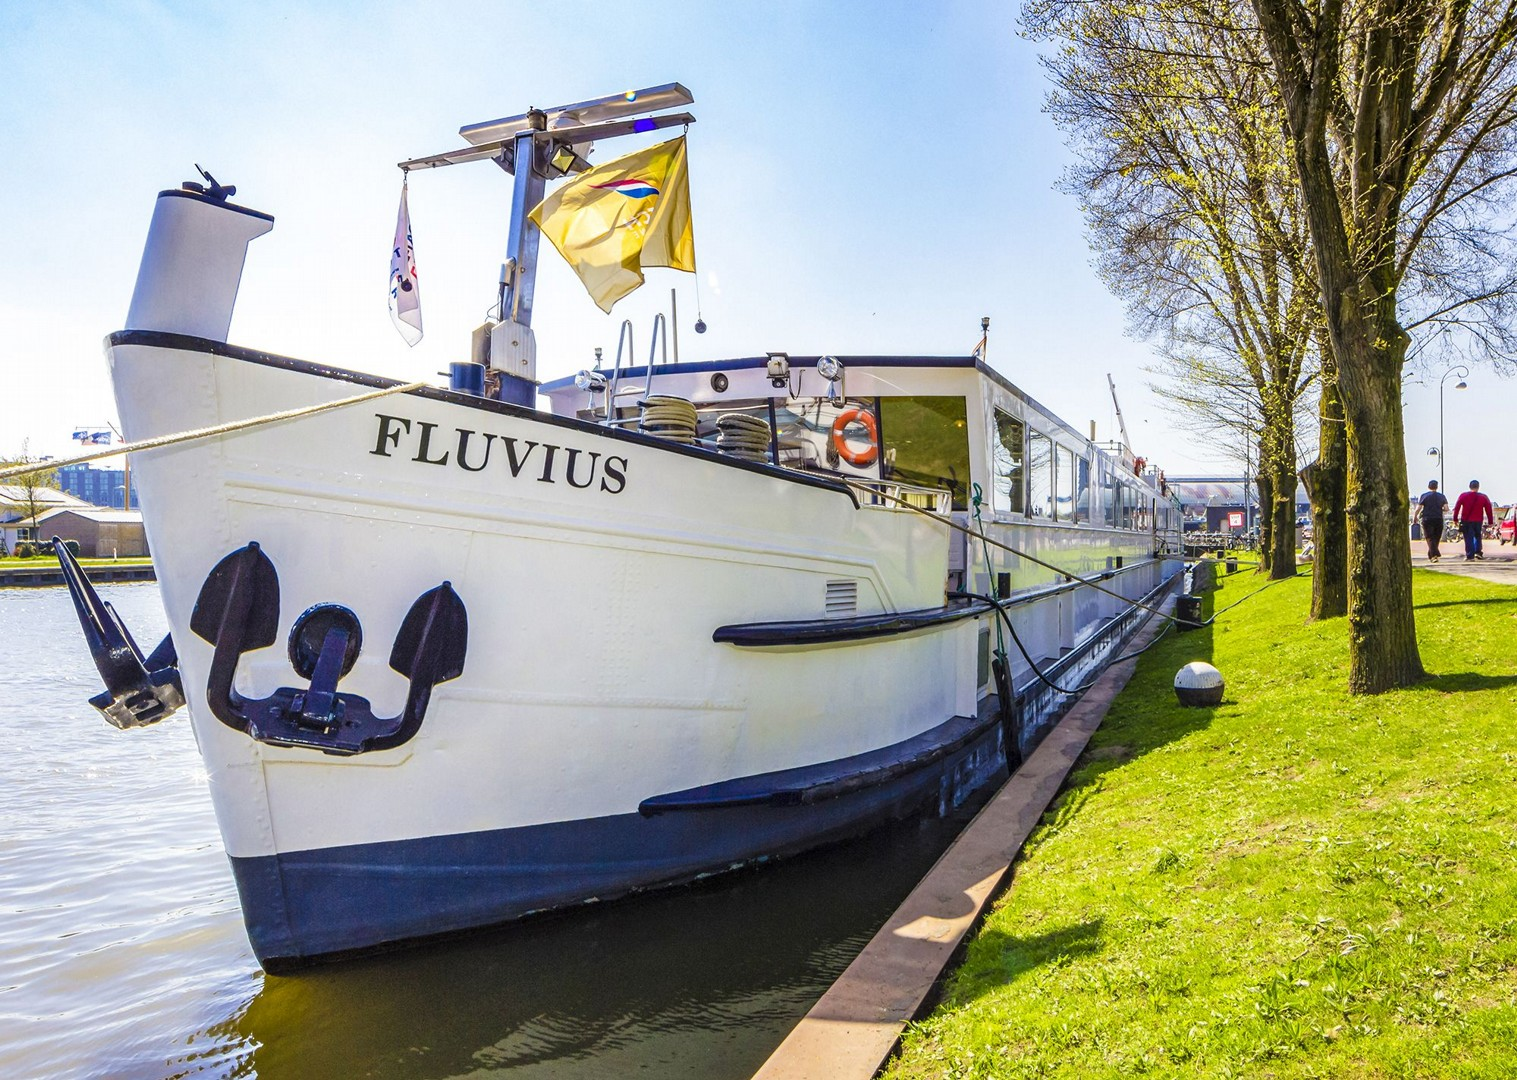 bike-and-barge-boat-tour-fluvius-culture-comfort-holland-and-belgium.jpg - Holland and Belgium - Amsterdam to Bruges - Leisure Cycling